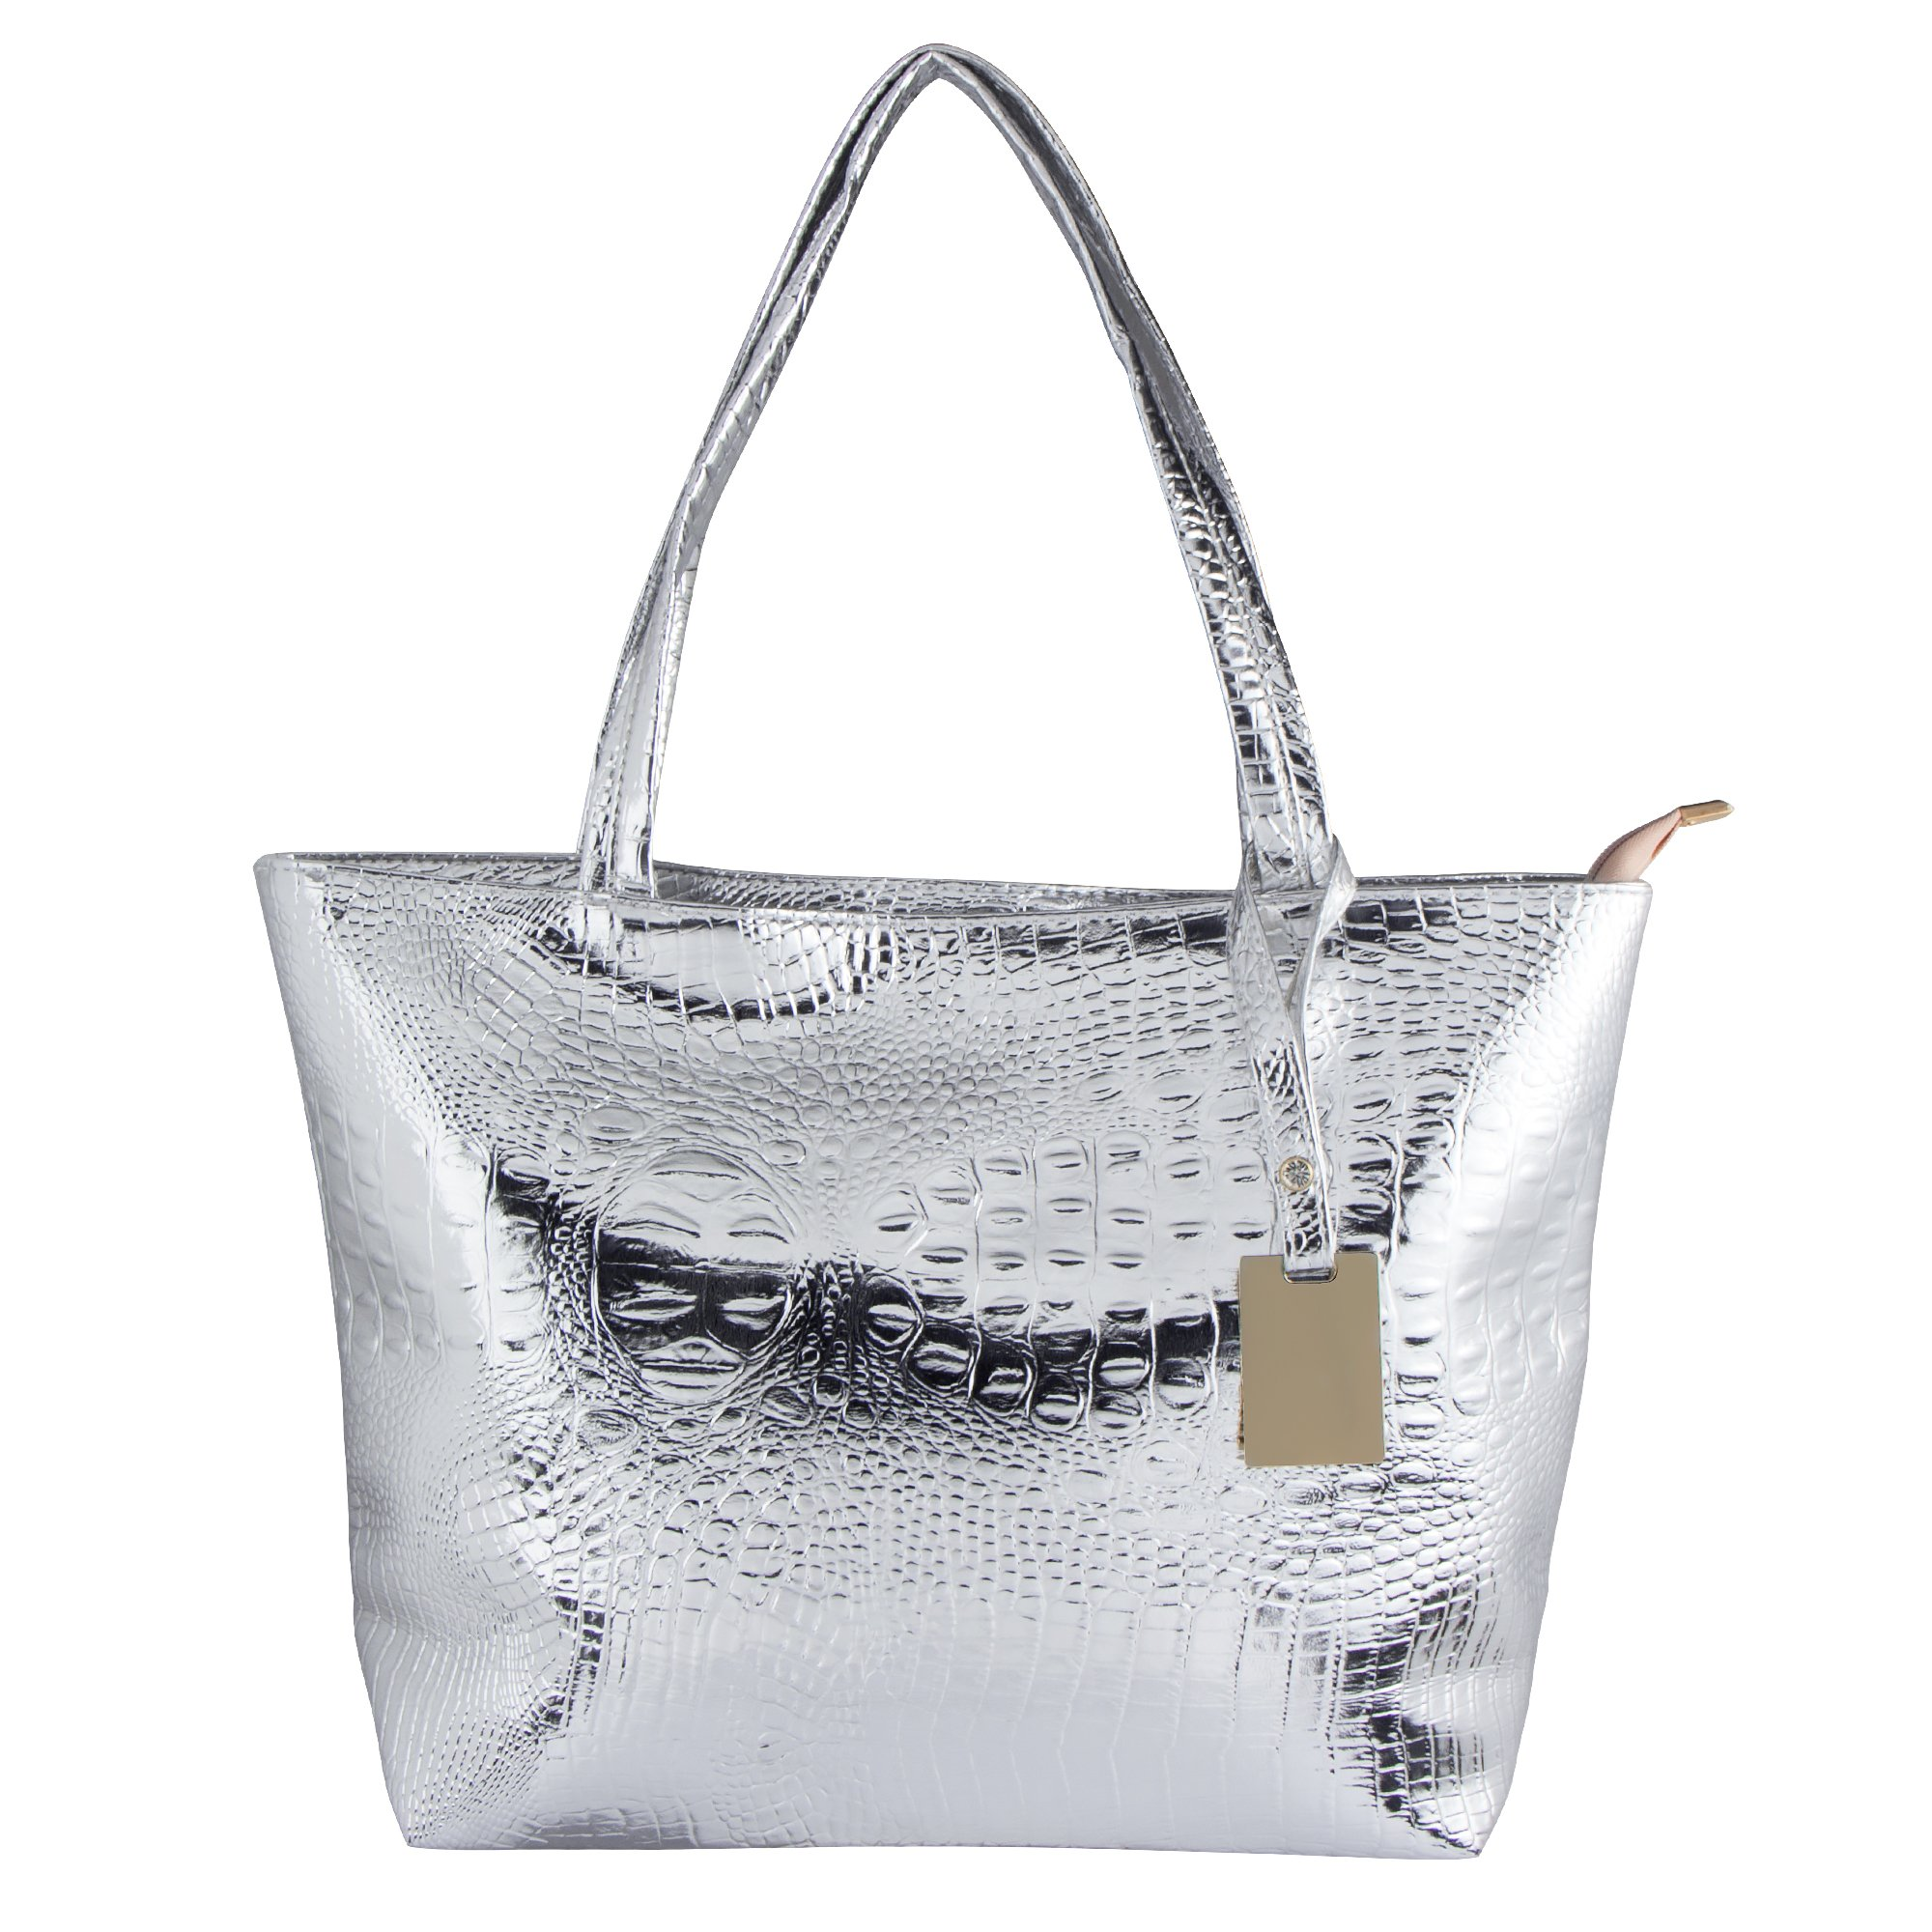 Bagood Womens Crocodile Pattern PU Leather Casual Shopping Handbags High Capacity Shoulder Ladies Soft Bag for Wedding Bridal Prom Party Silver